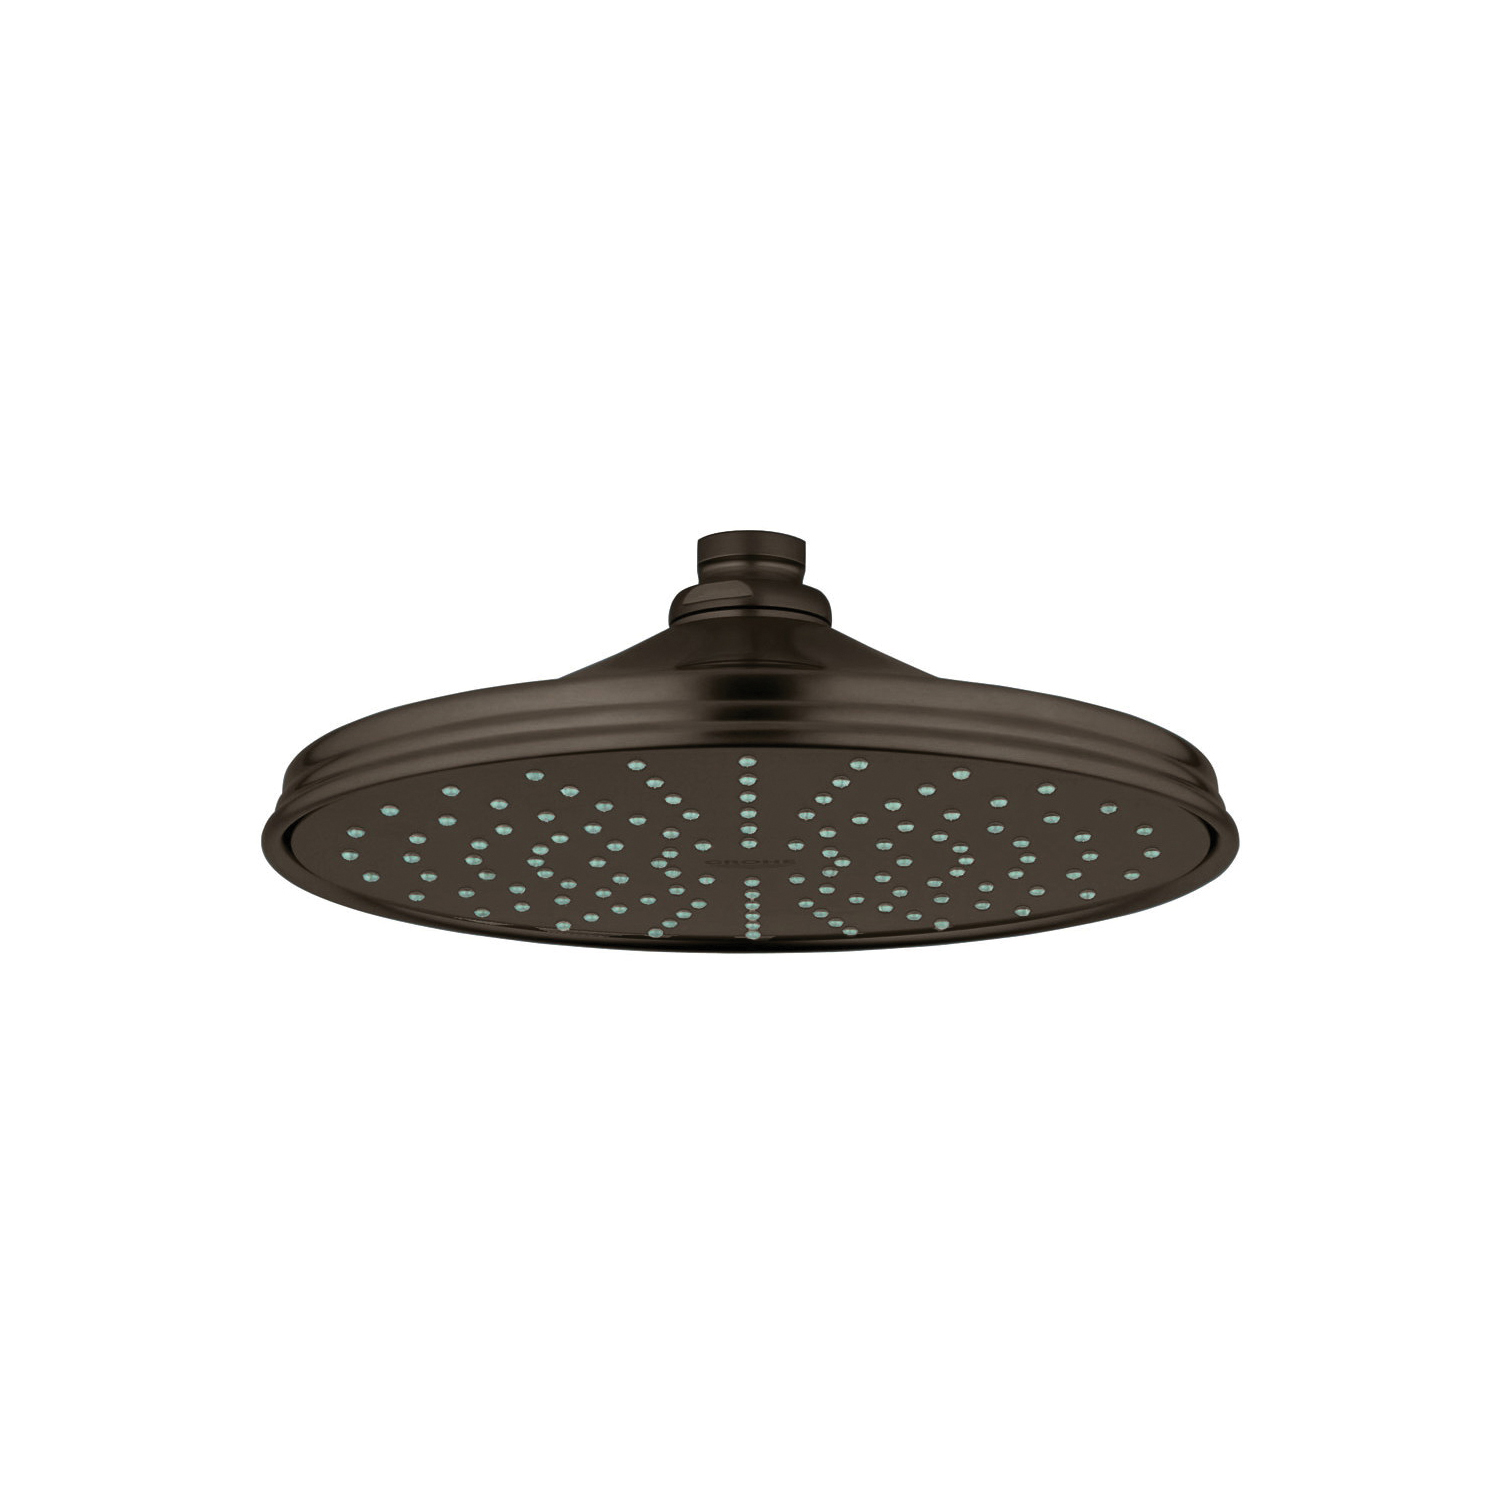 GROHE 28375ZB0 Rainshower® Rustic 210 Shower Head, 2.5 gpm, 1 Spray, Ceiling Mount, 8-3/8 in Dia Head, Import